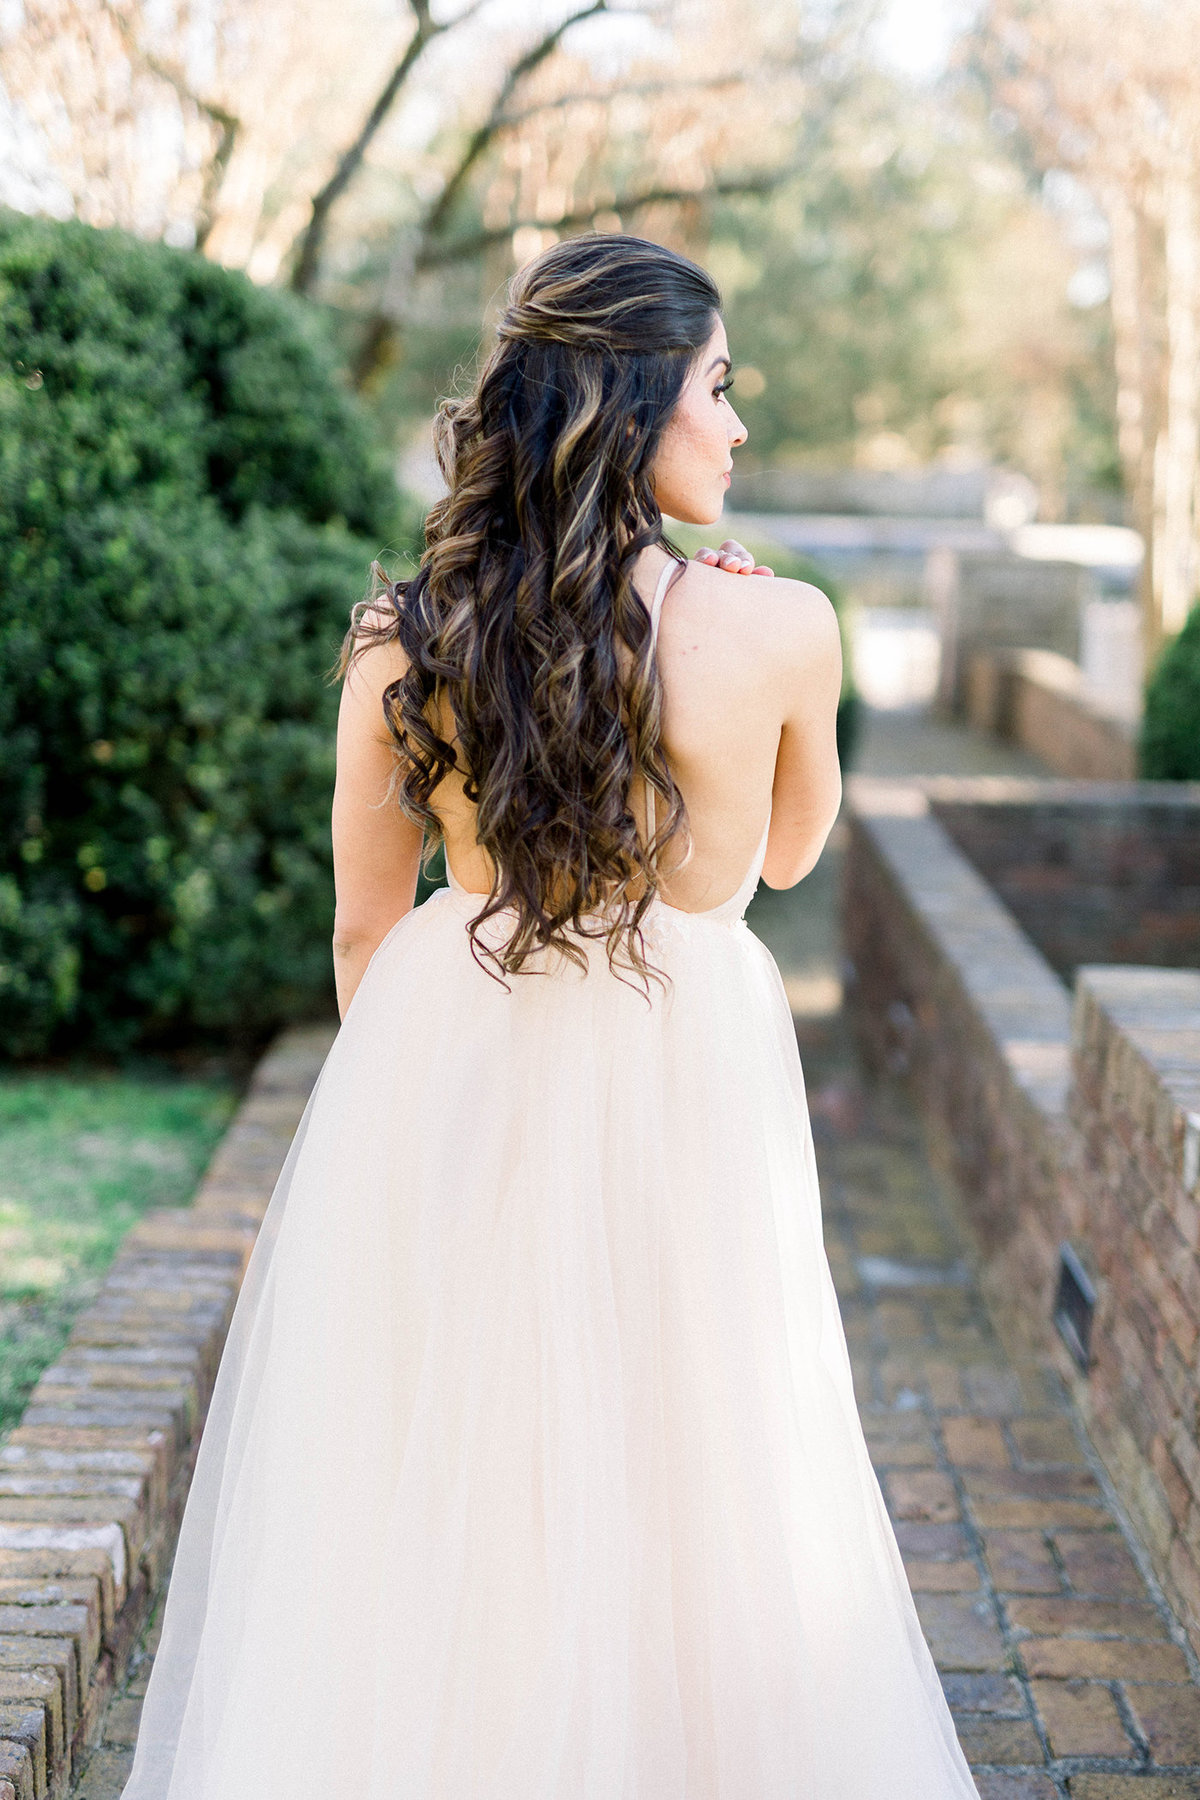 Cedarmont Nashville Editorial - Sarah Sunstrom Photography - Fine Art Wedding Photographer - 36